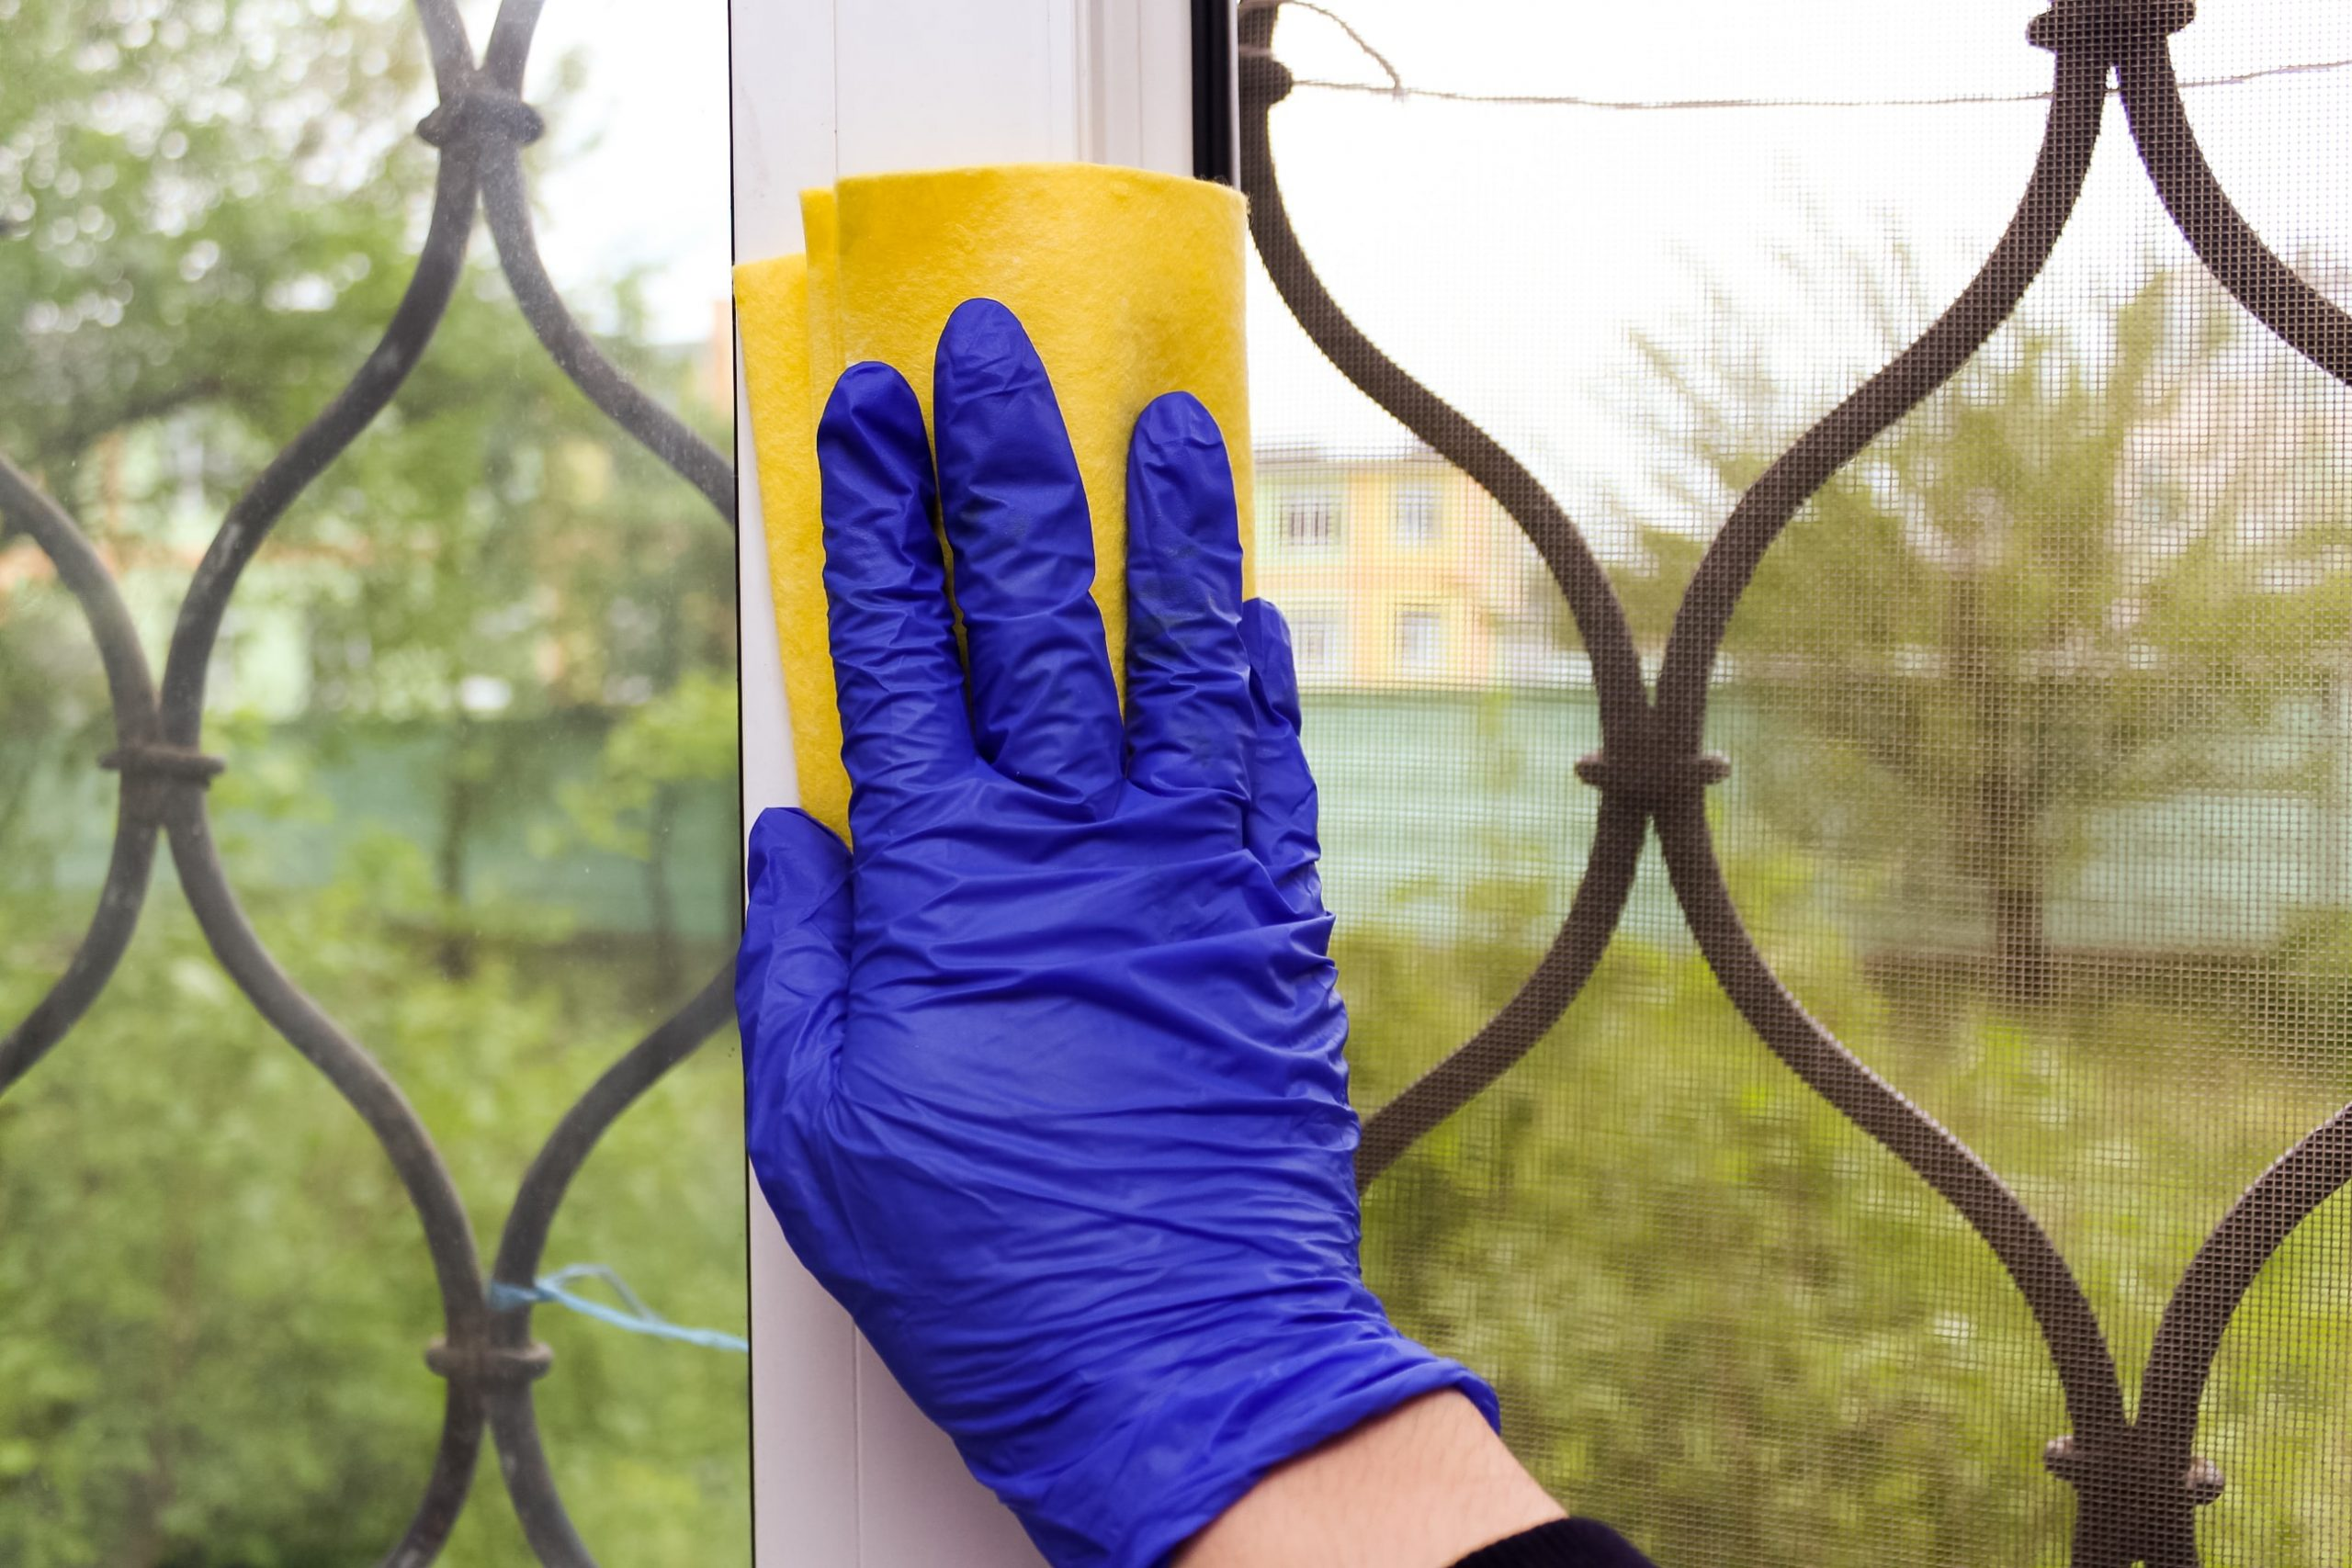 how do you price window cleaning?